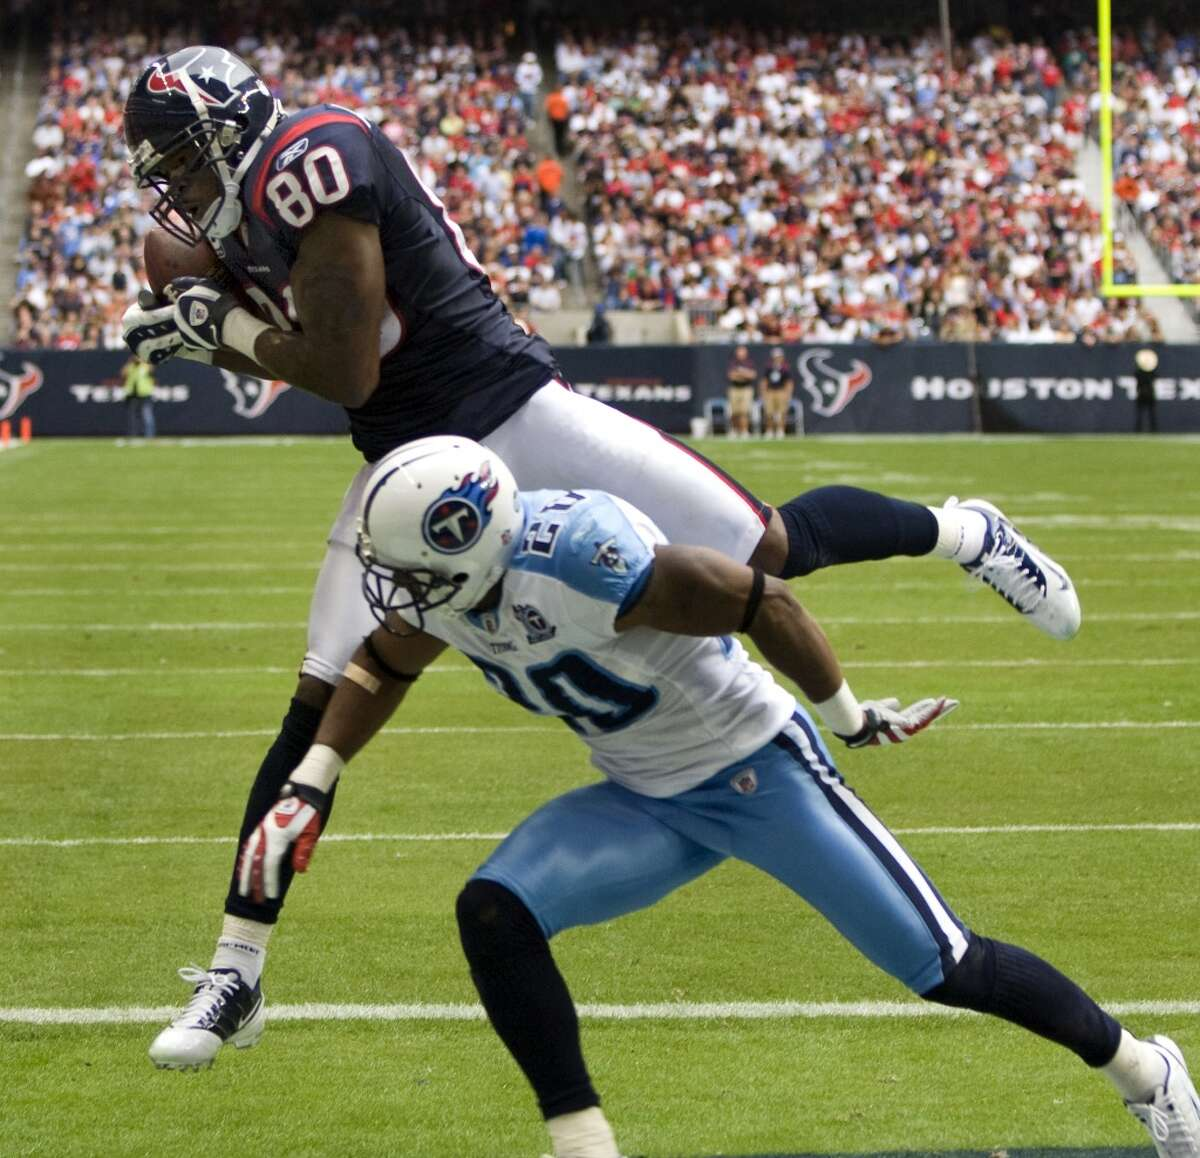 #10: 2008 vs. tennessee Titans Stats: 11 catches, 207 yards, 1 TD Significance: Second-quarter reception of 13 yards accounted for game's only touchdown in a 13-12 victory that got the Texans to 7-7.